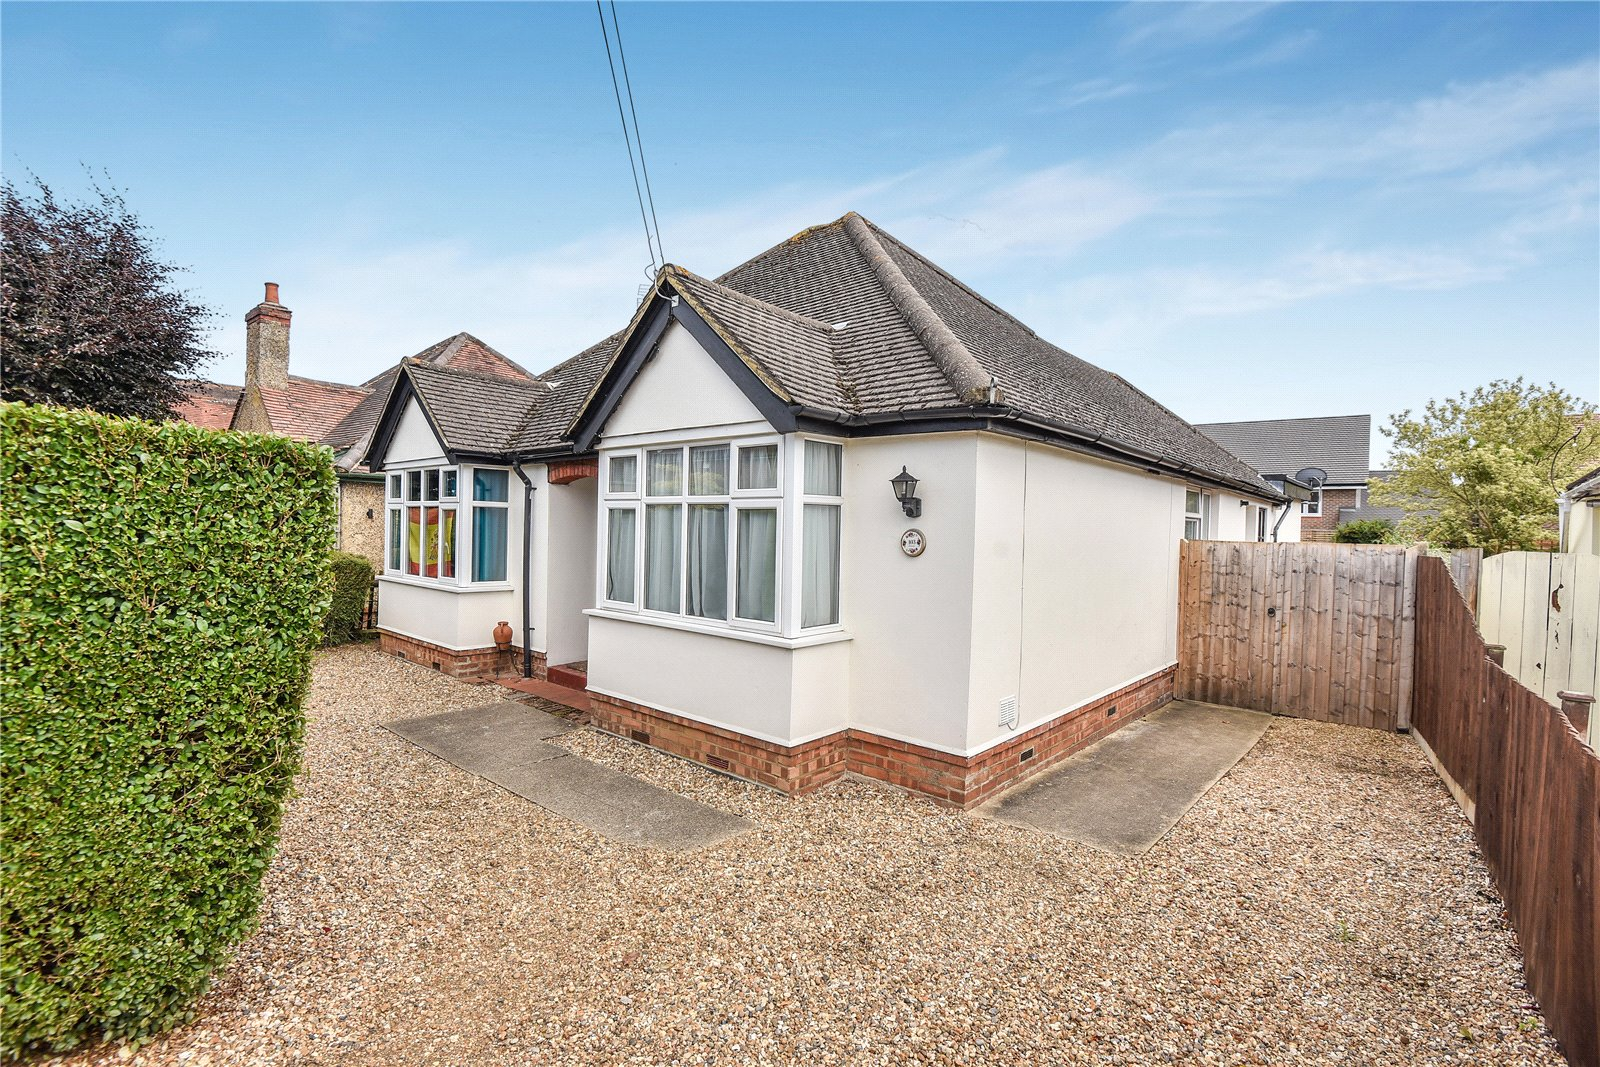 4 Bedrooms Detached Bungalow for sale in Alwyn Road, Maidenhead, Berkshire, SL6